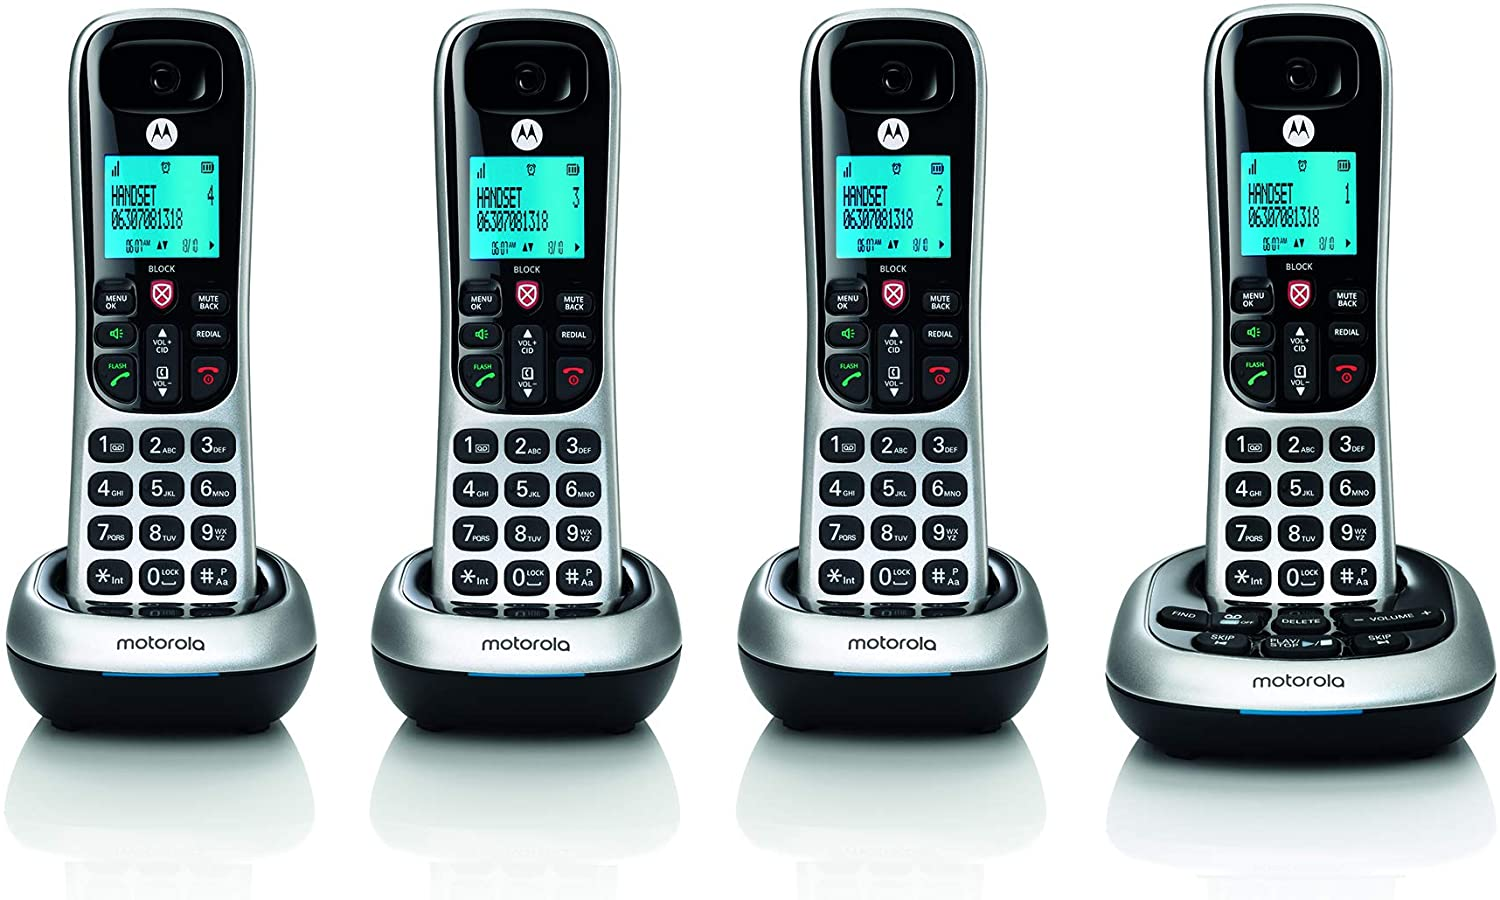 Motorola CD4014 DECT 6.0 Cordless Phone with Answering Machine and Call Block, Silver/Black, 4 Handsets